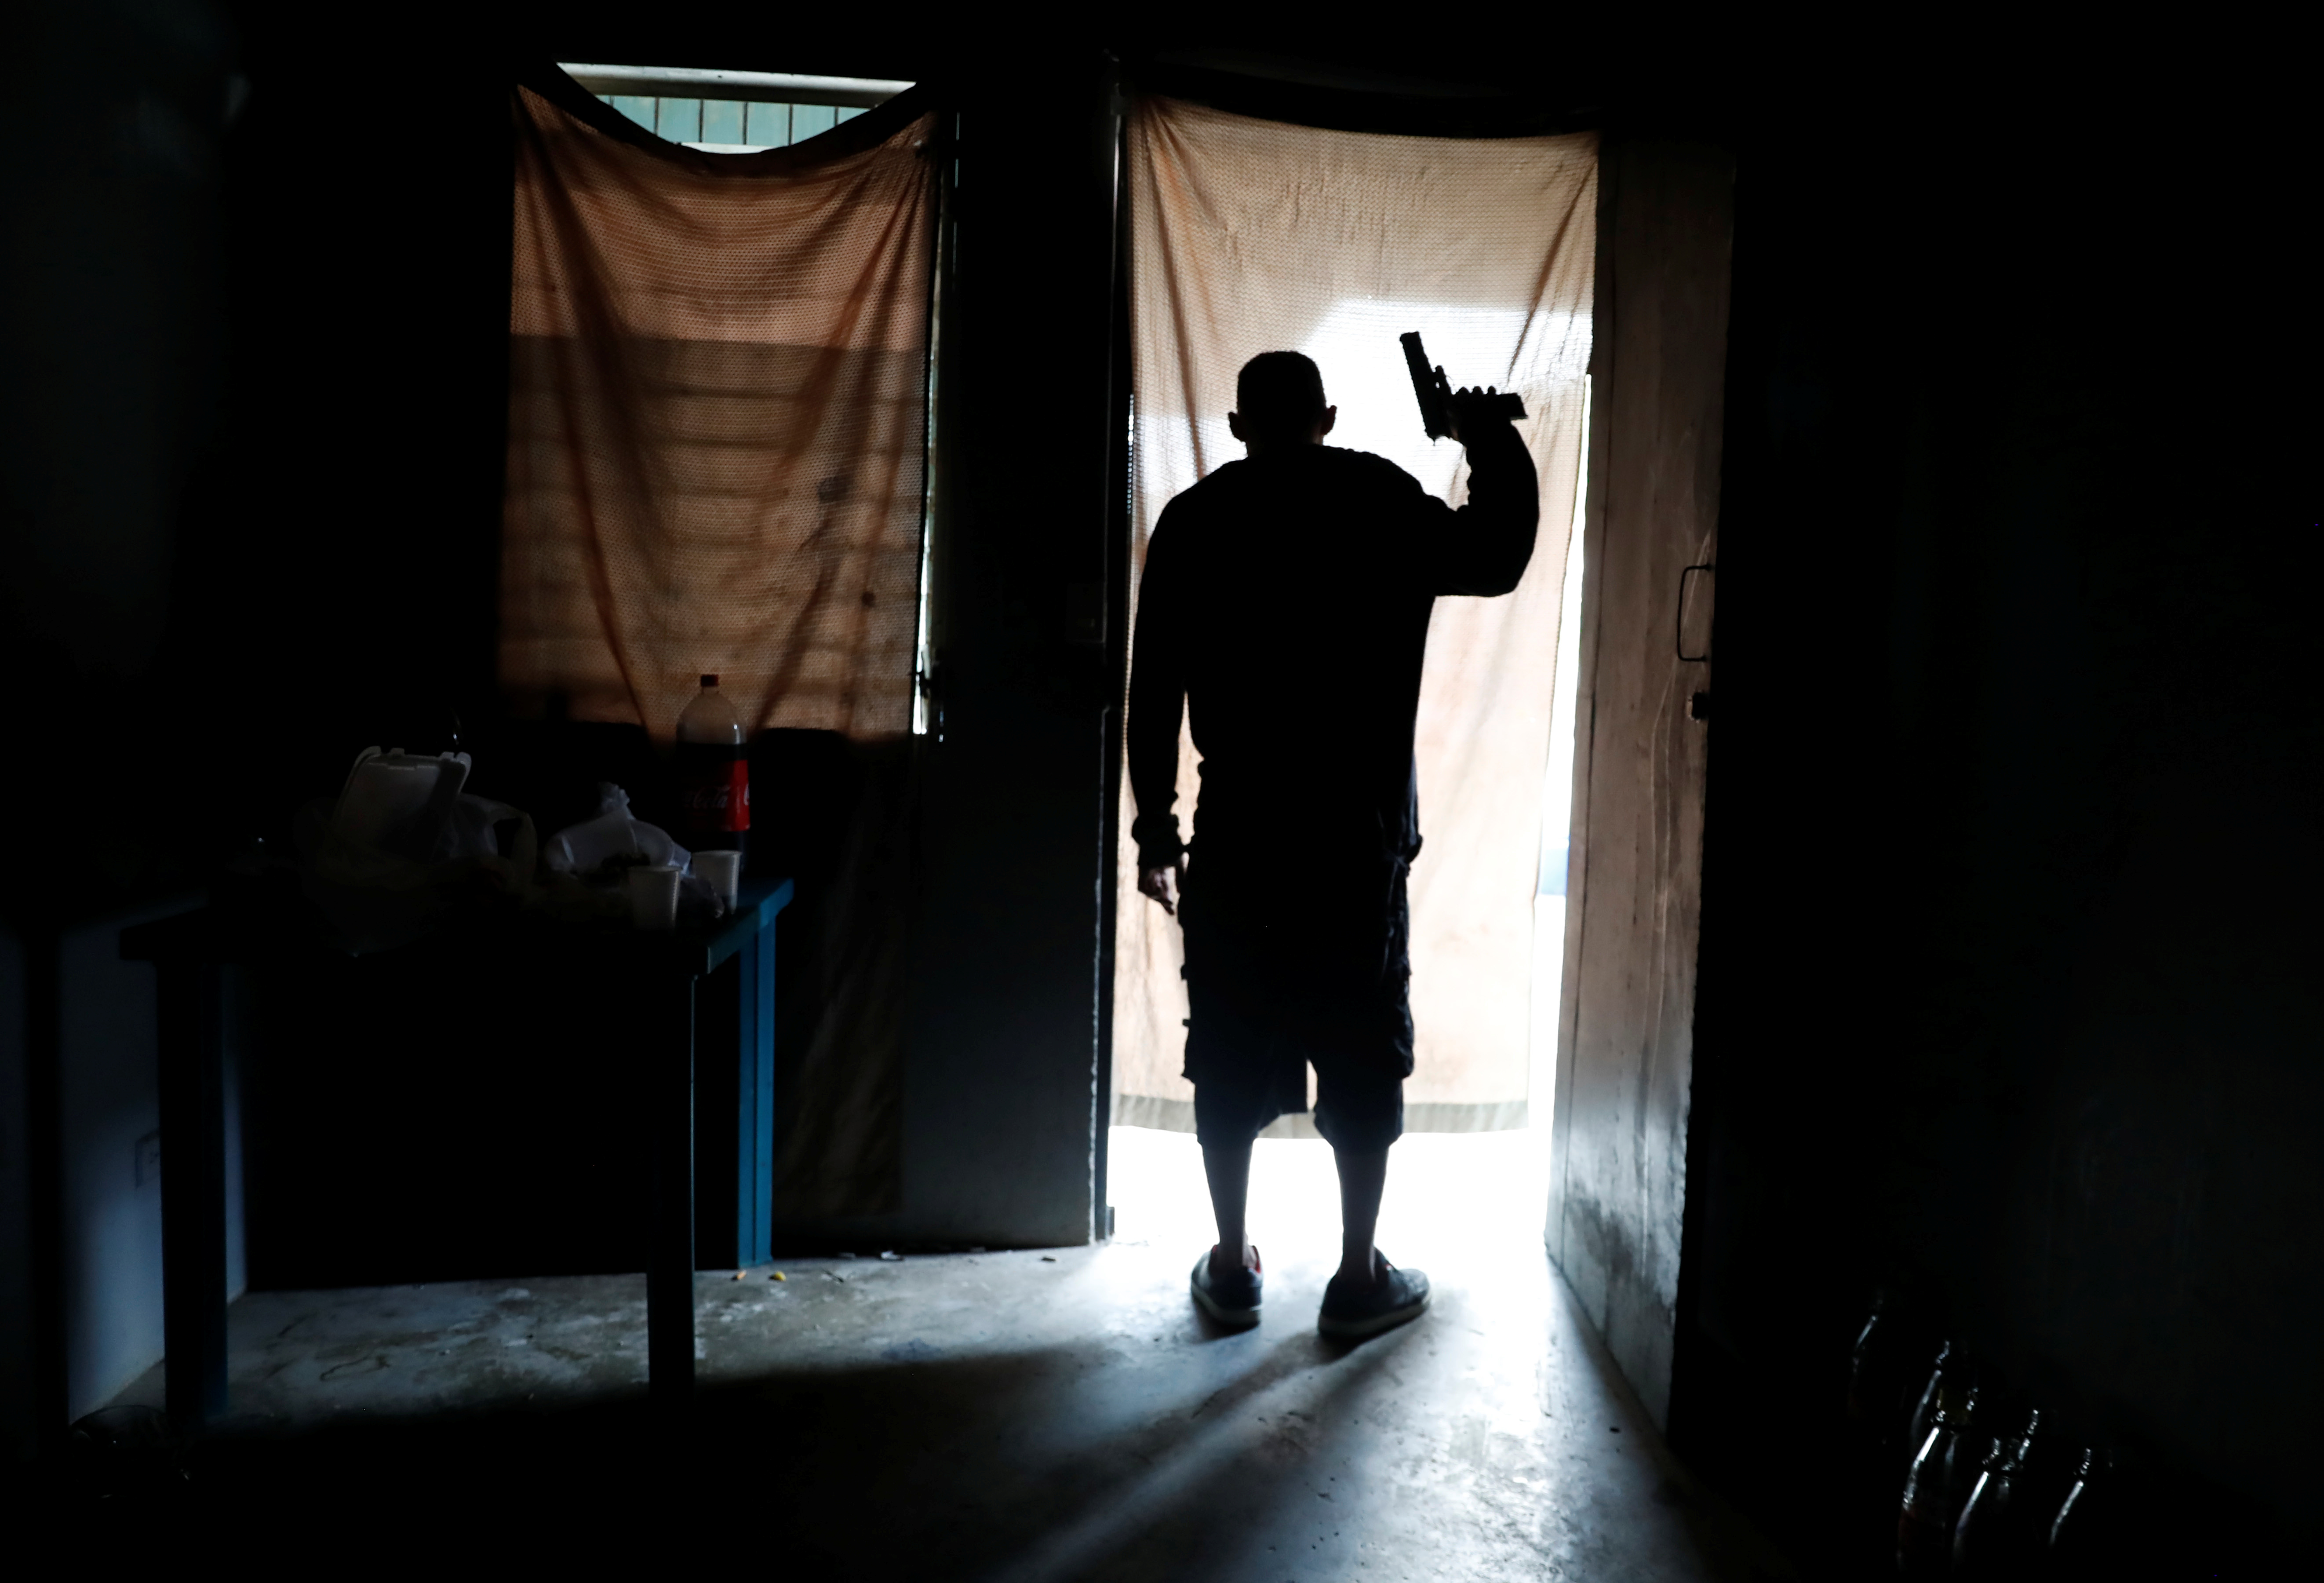 A member of MS-13 street gang looks out from a house as police patrol the street outside, in San Pedro Sula, Honduras September 29, 2018. The man was injured during a shoot-out between rival gangs MS-13 and Barrio 18 and died later of his injuries at a local hospital, according to a police report. REUTERS/Goran Tomasevic